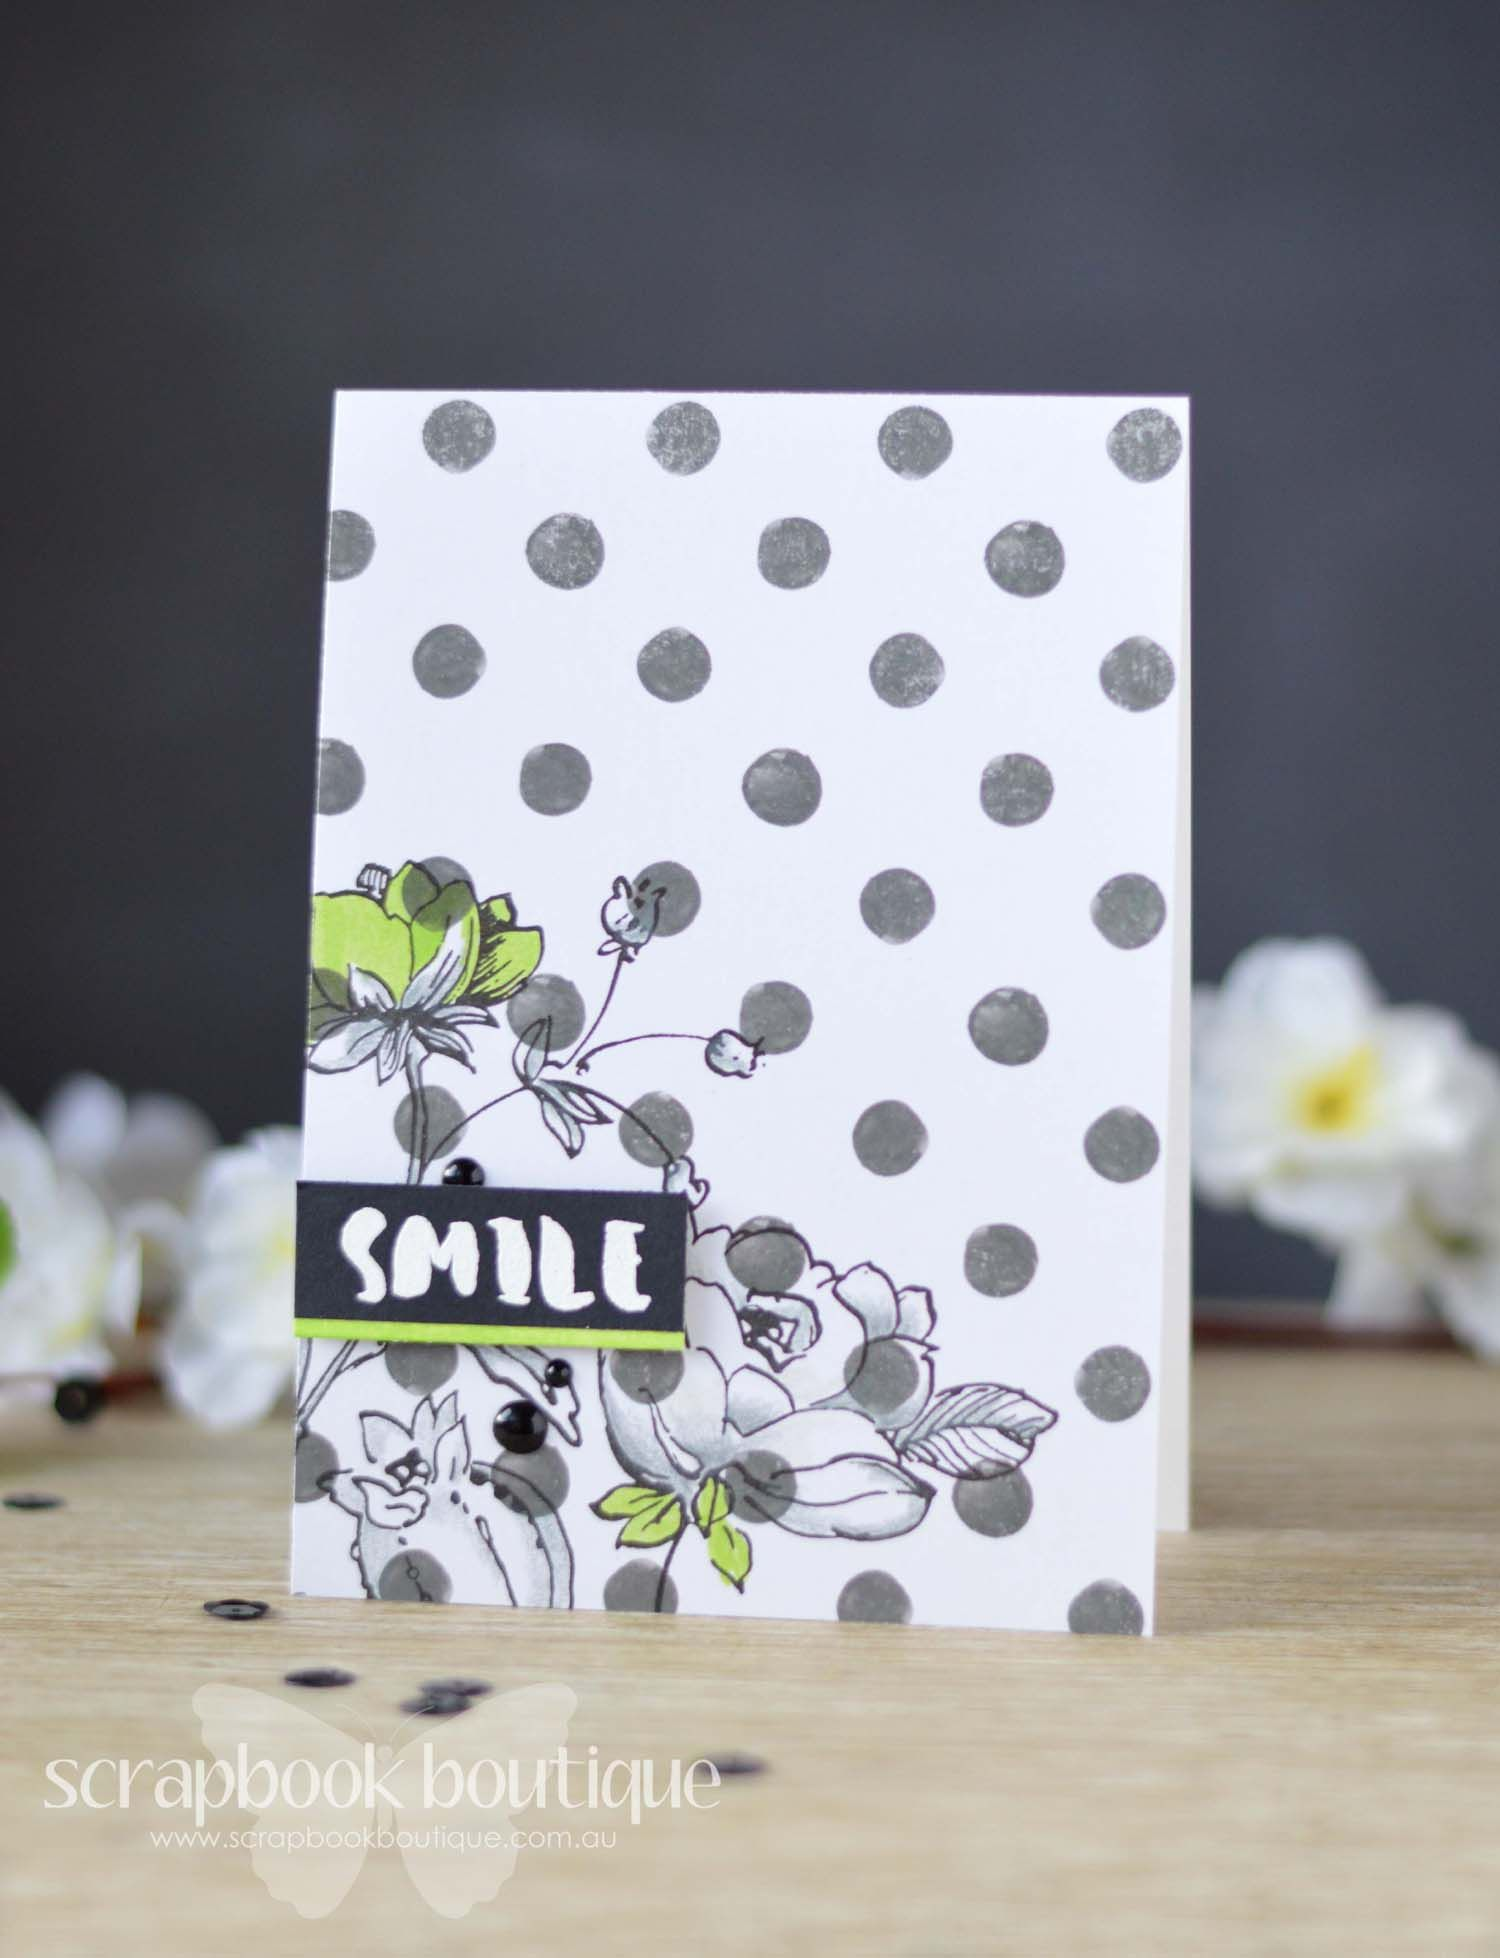 Time for another Challenge at Scrapbook Boutique Bloghop & Giveaway!  (Love the pop of color)